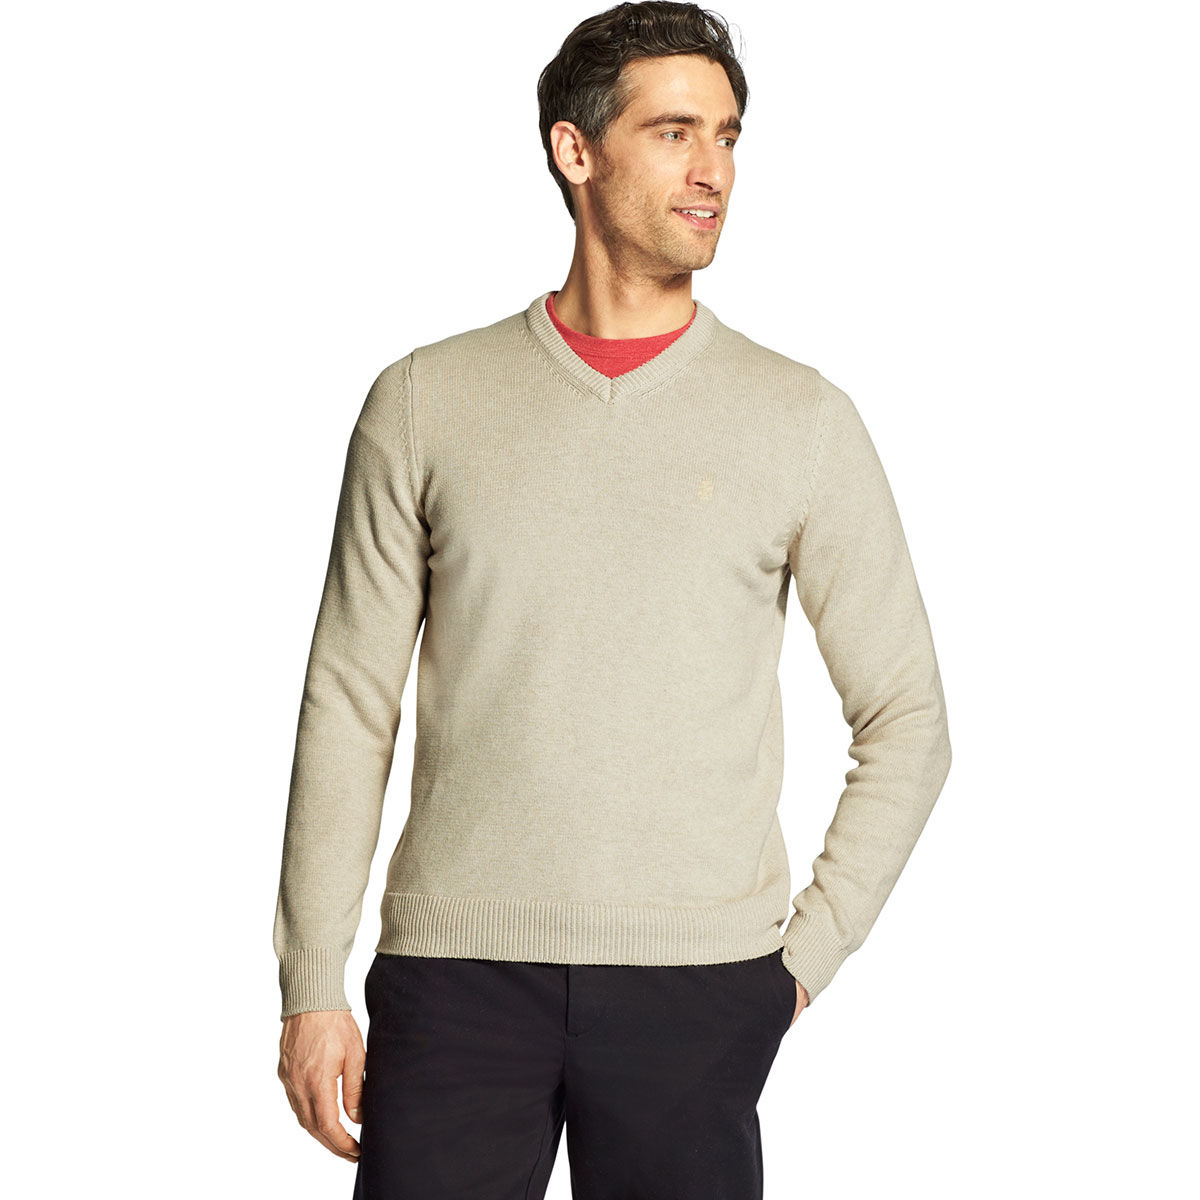 Izod Men's Premium Essentials V-Neck Sweater - Brown, L